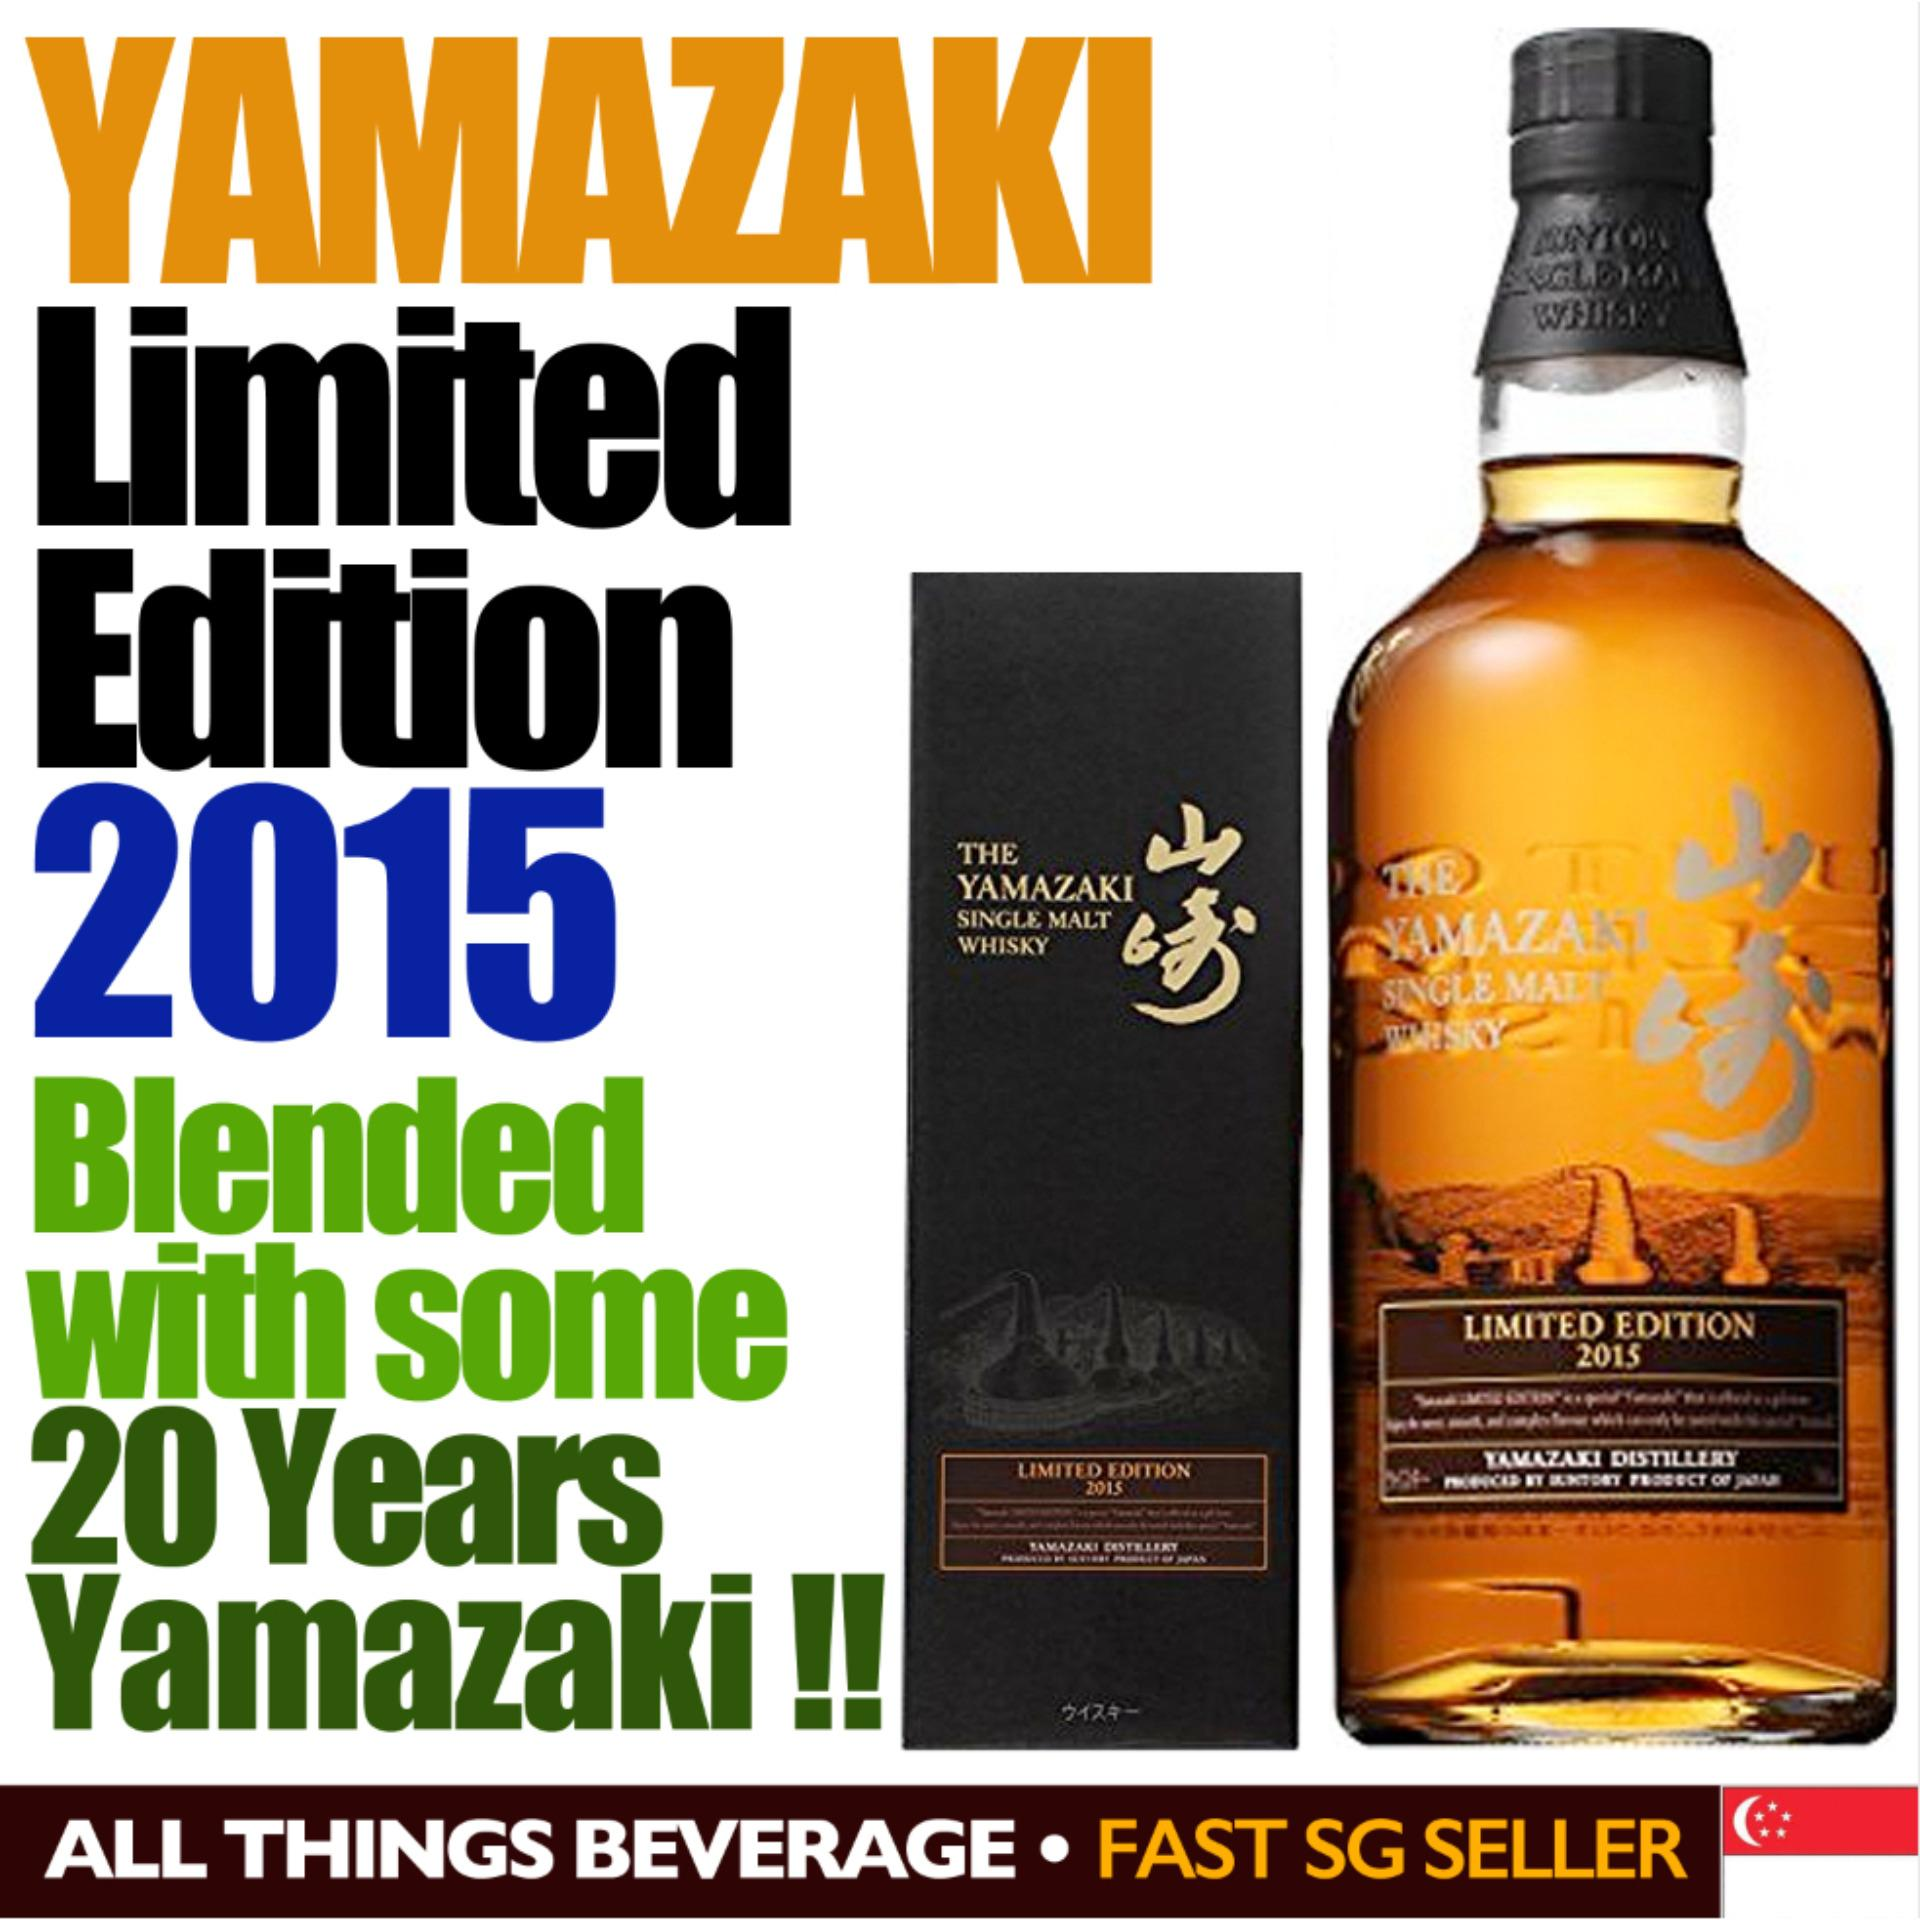 Get The Best Price For Yamazaki Limited Edition 2015 Whisky Original Box